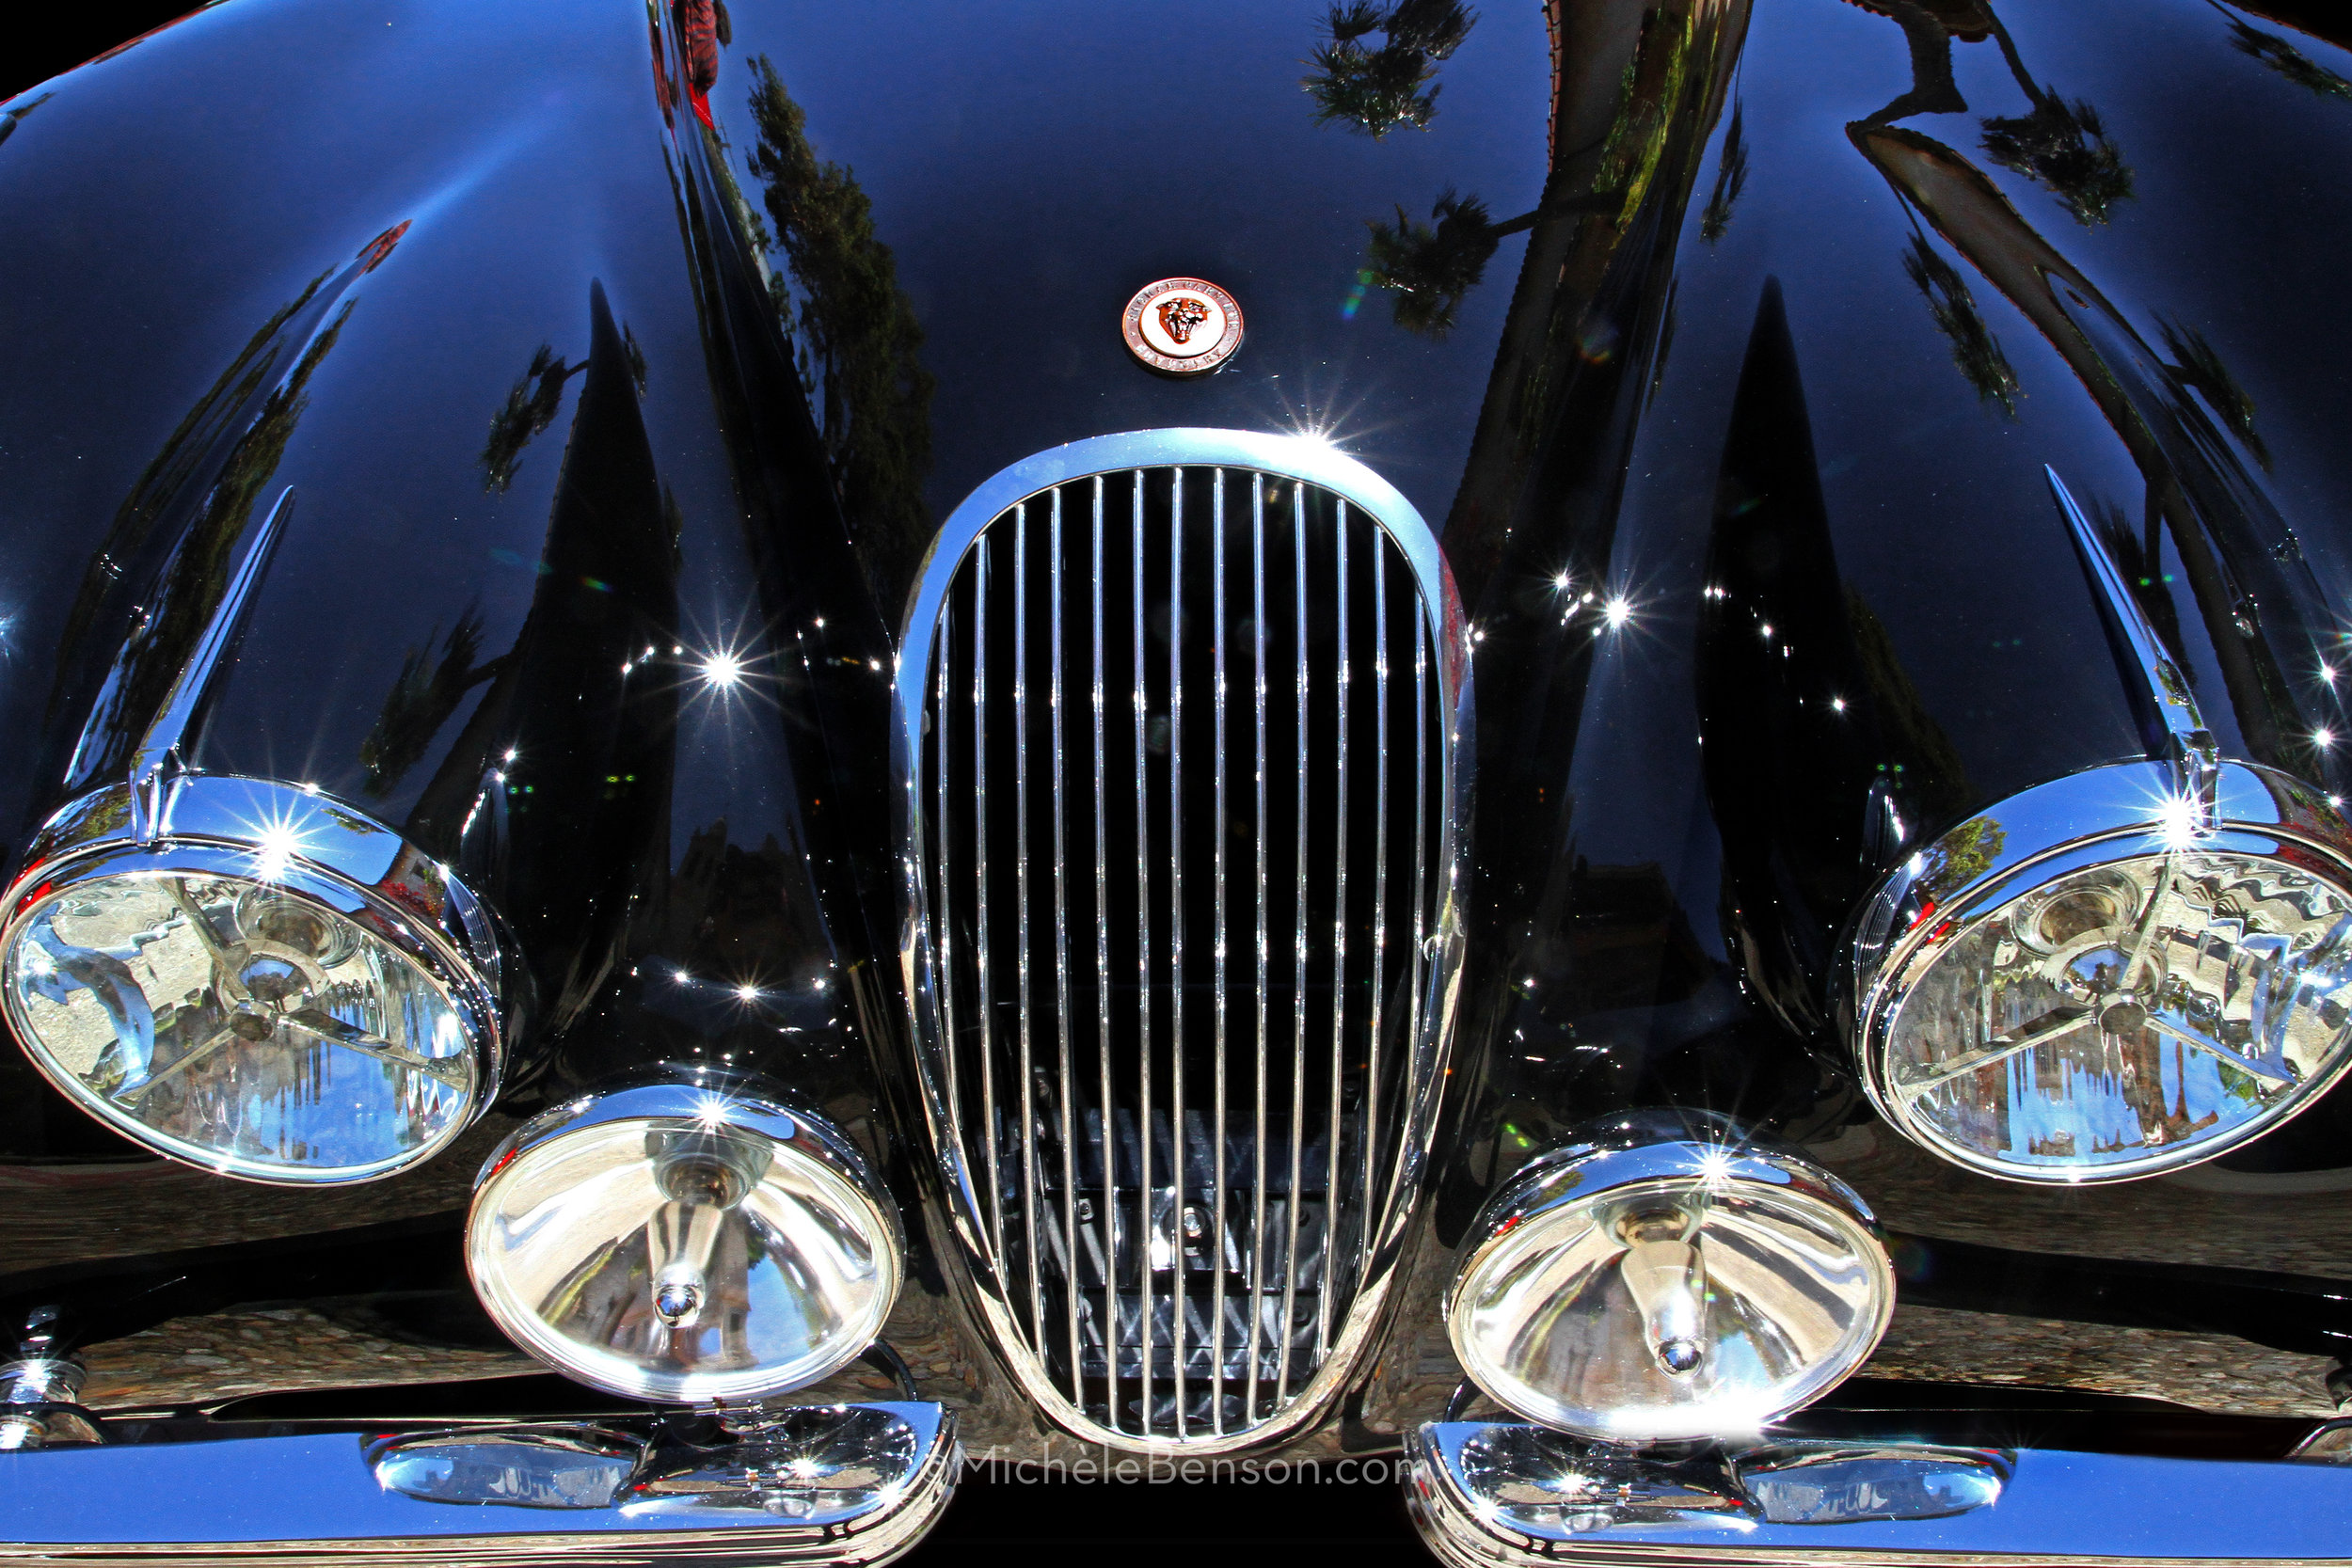 1952 Jaguar XK 120 Roadster Carmel, California 2015